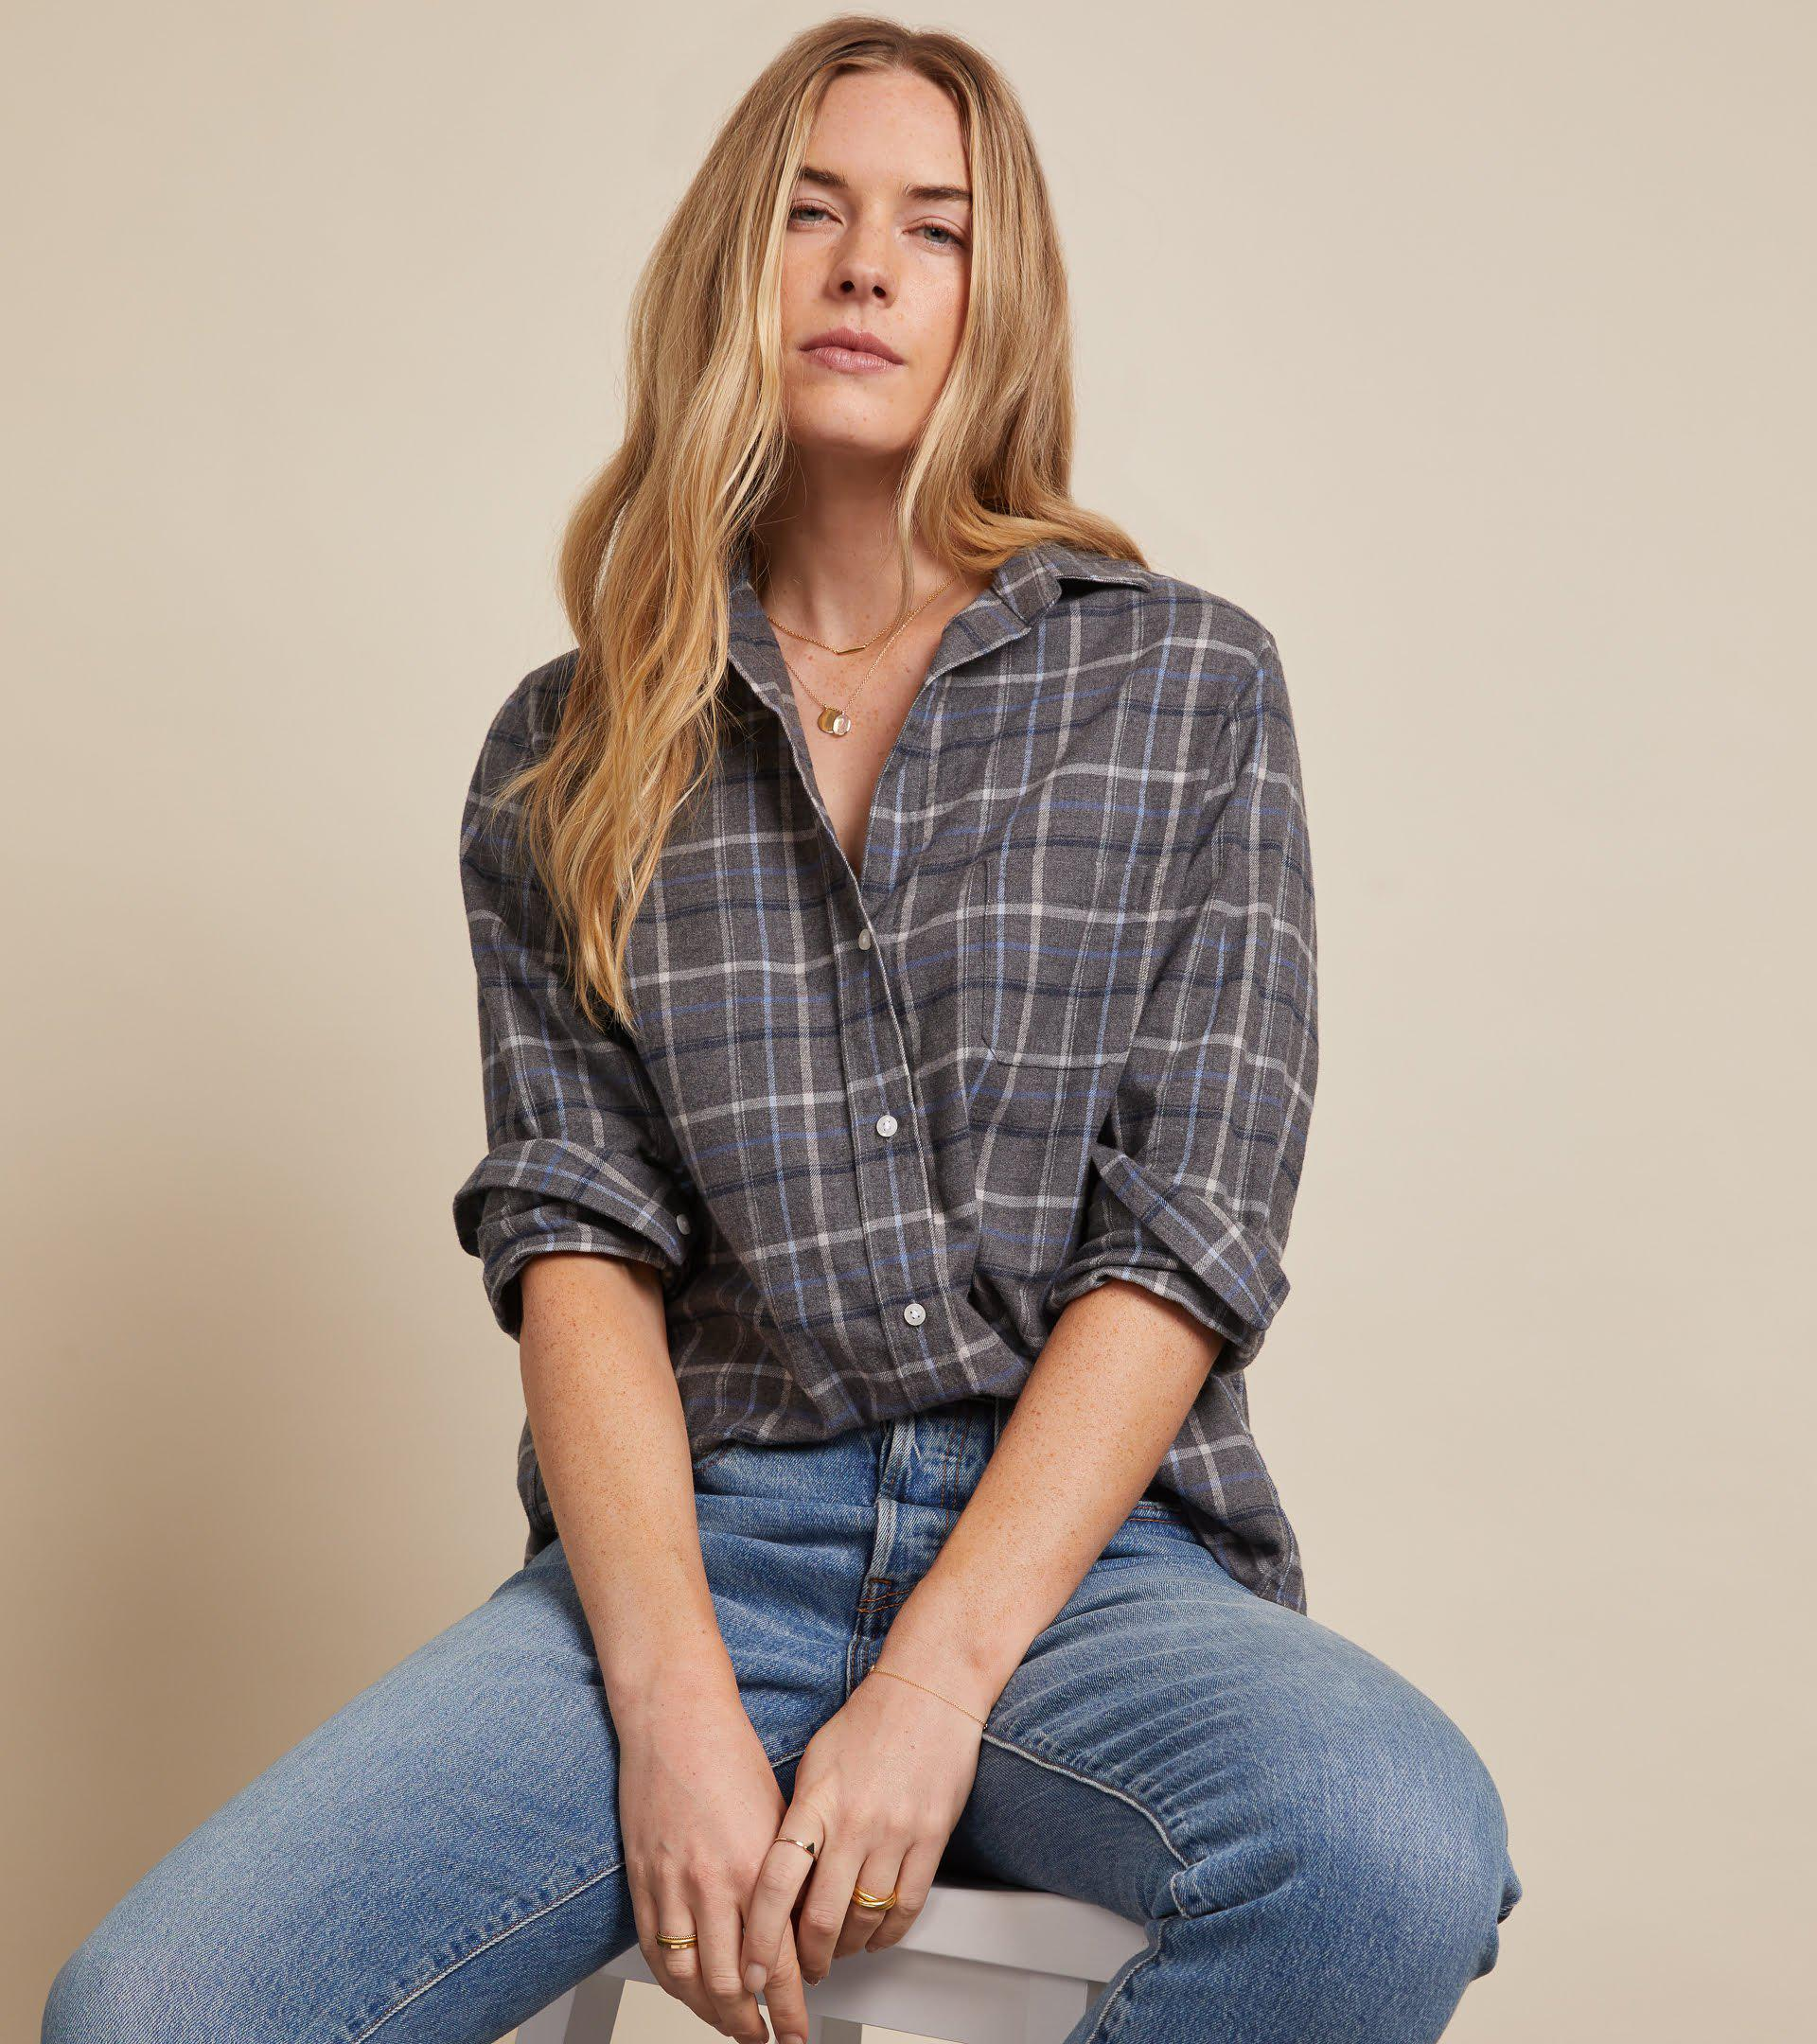 The Hero Button-Up Shirt Gray, Blue, White and Black Plaid, Feathered Flannel